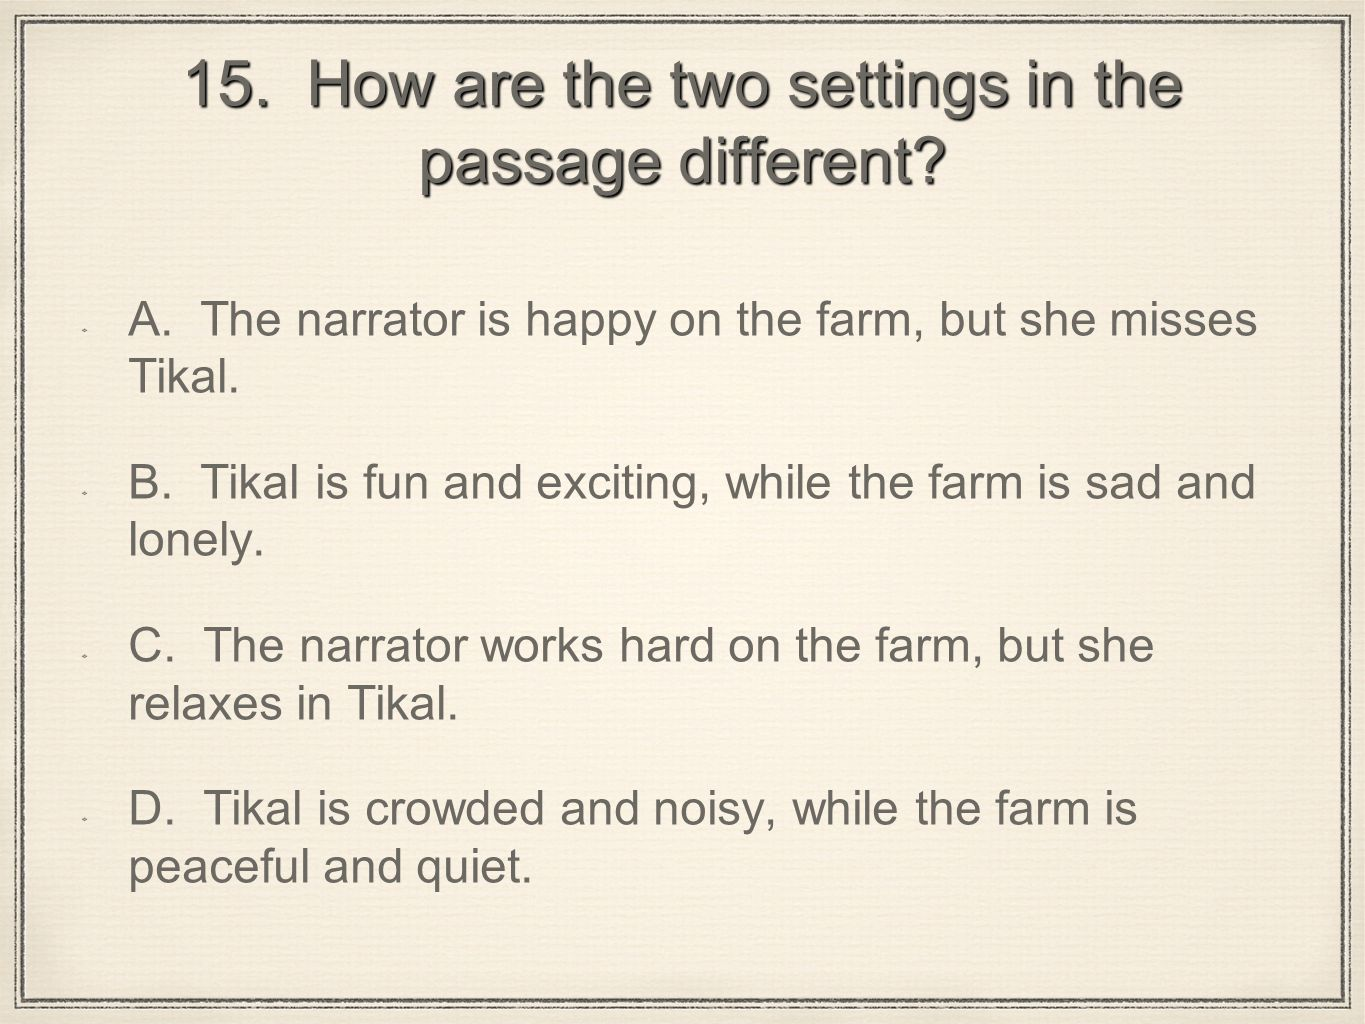 15. How are the two settings in the passage different